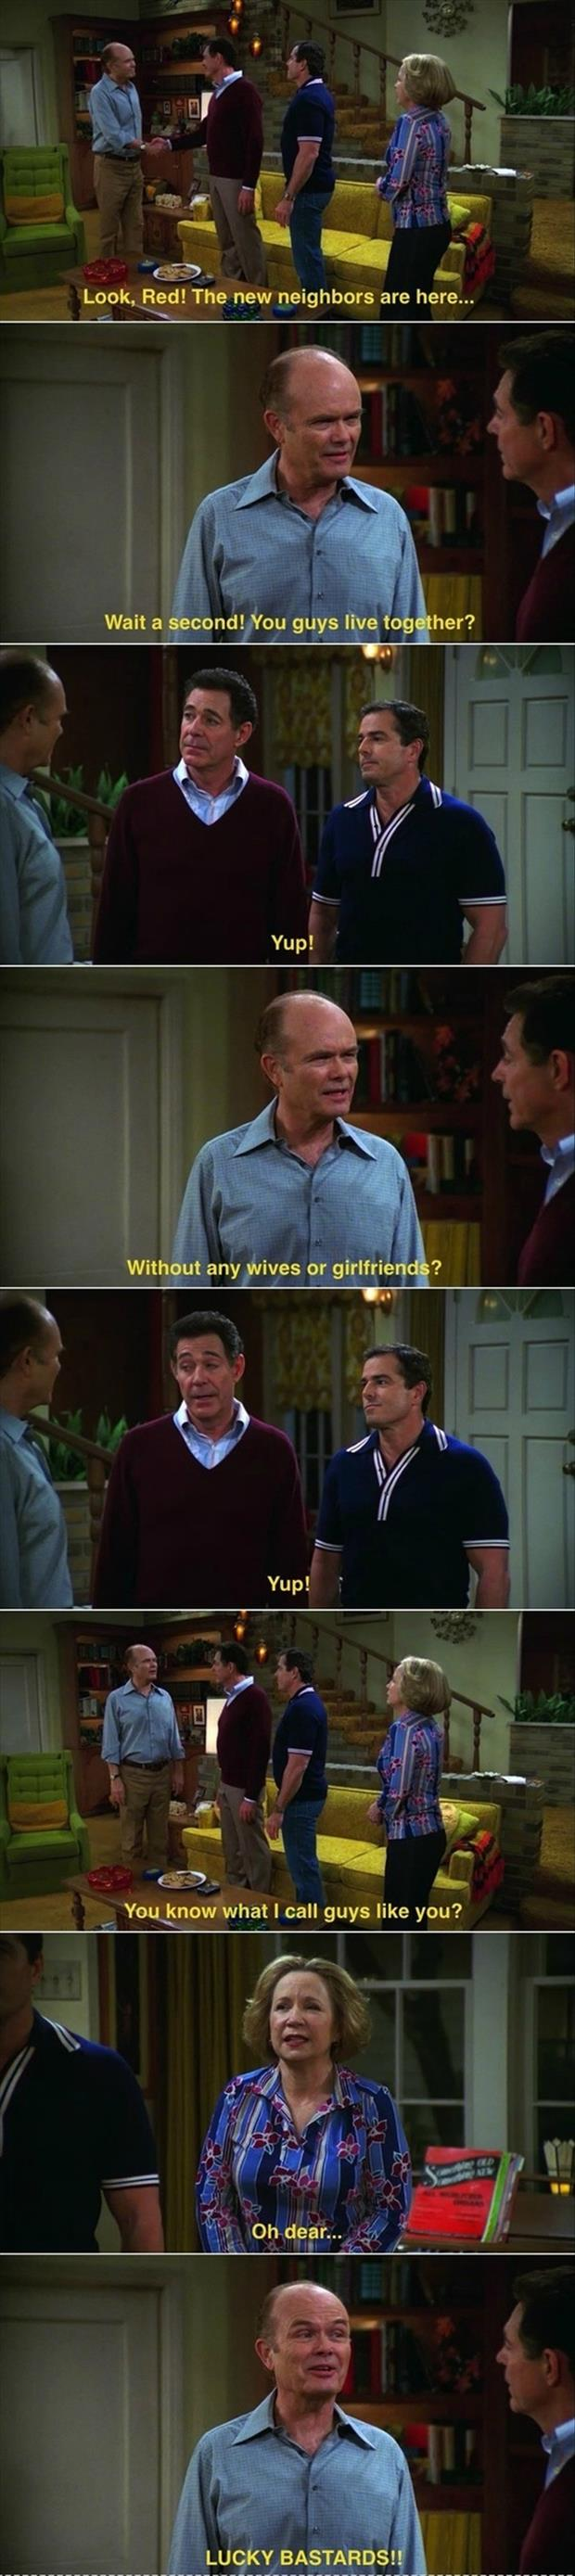 gay jokes on that 70's show